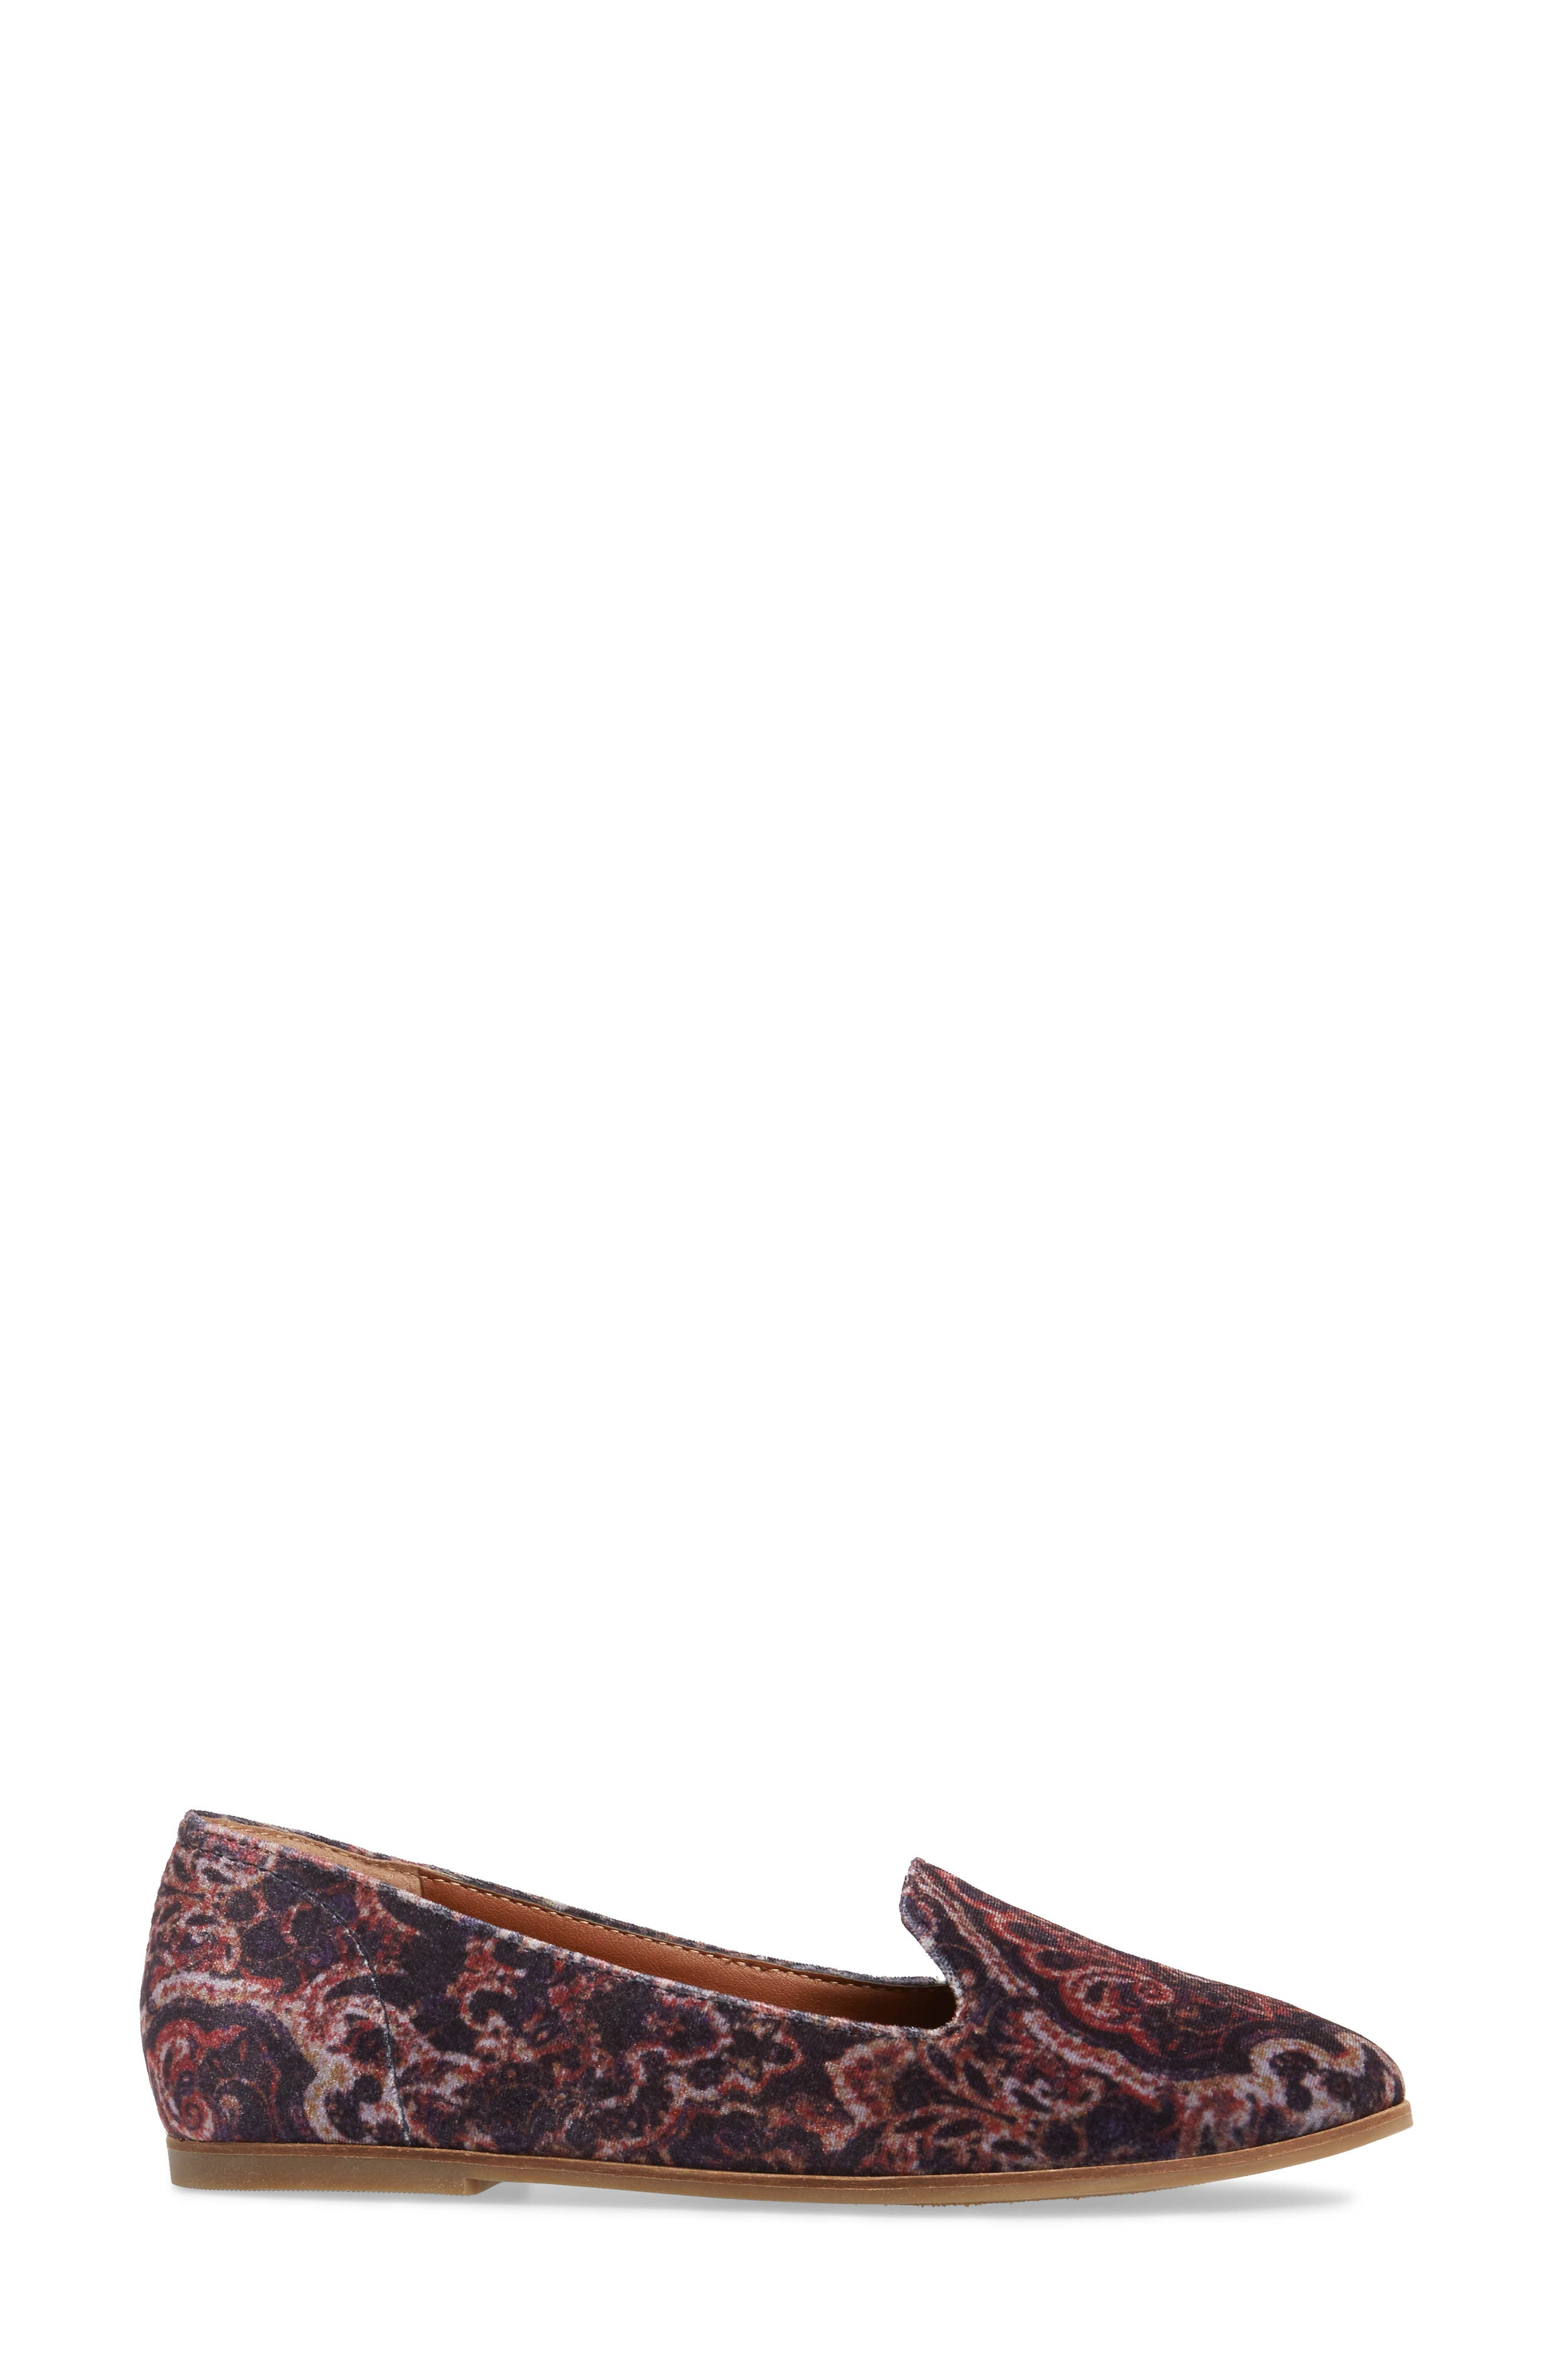 Carlyn Loafer Flat,                             Alternate thumbnail 10, color,